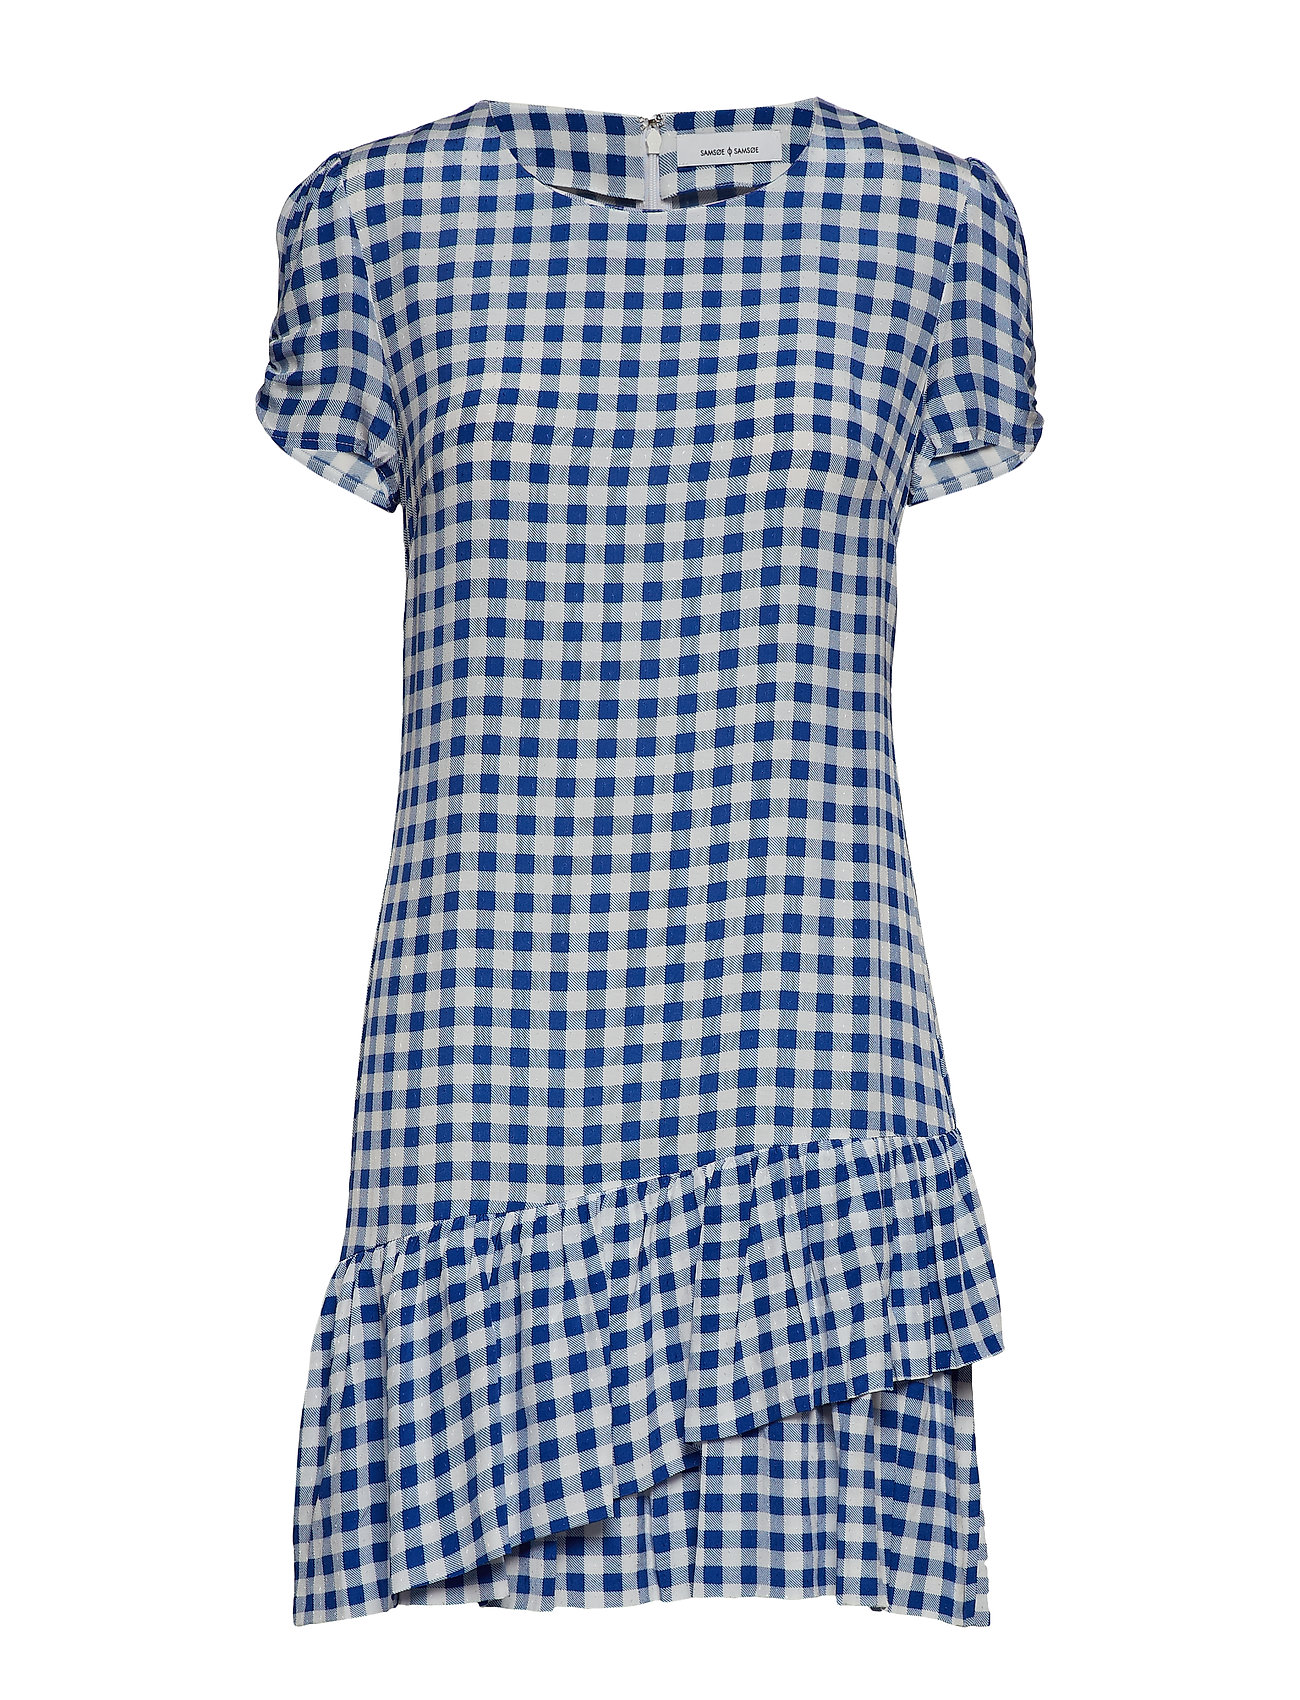 Samsøe & Samsøe Monza short dress aop 10458 - BLU CUBETTO